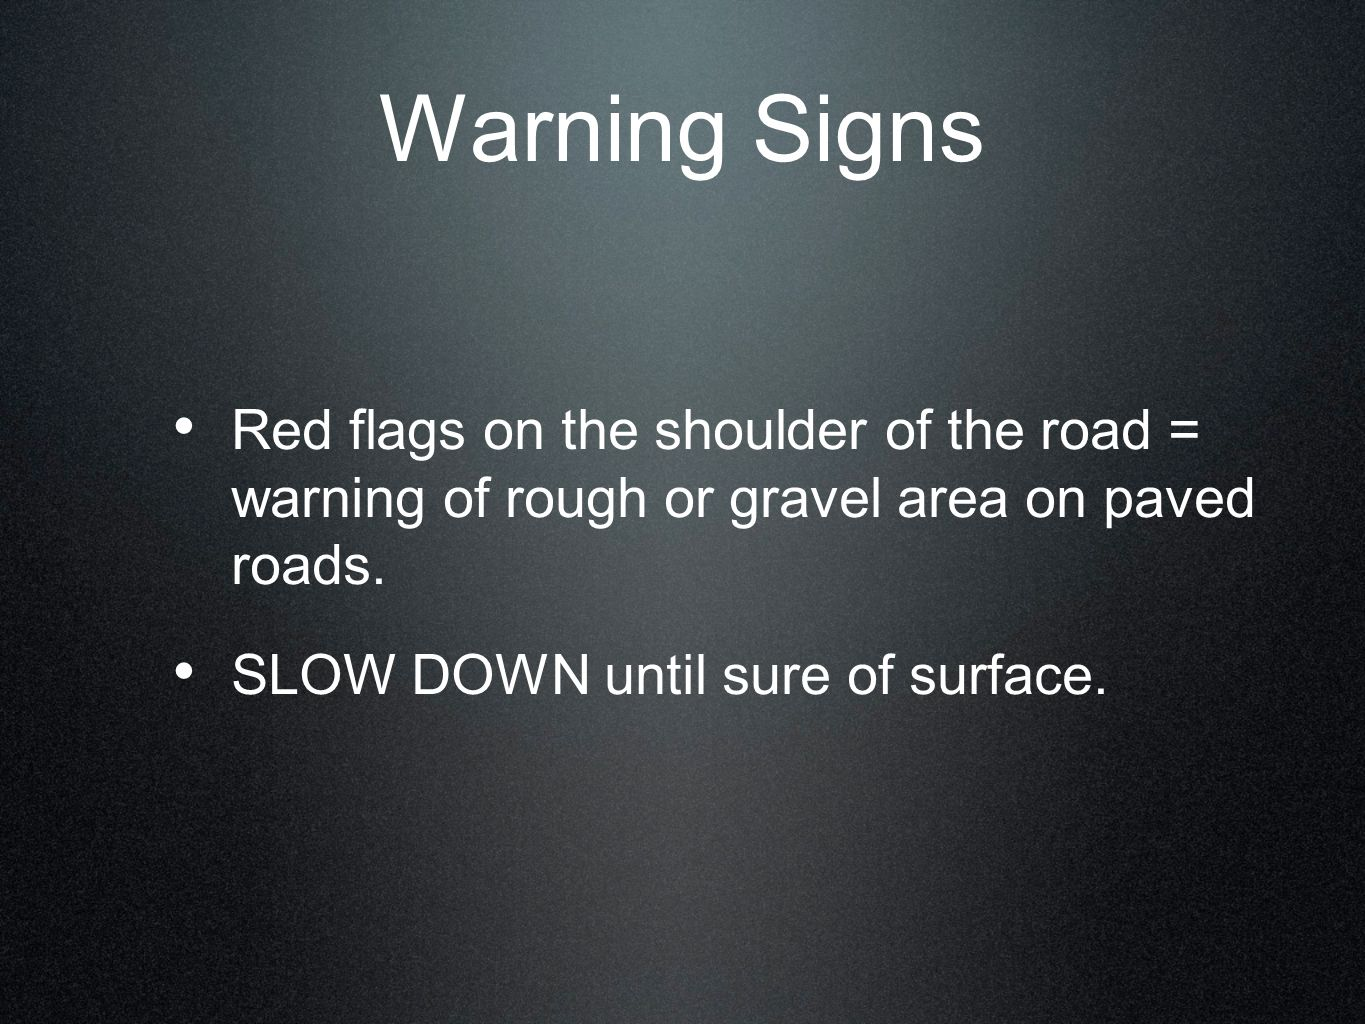 Warning Signs Red flags on the shoulder of the road = warning of rough or gravel area on paved roads.